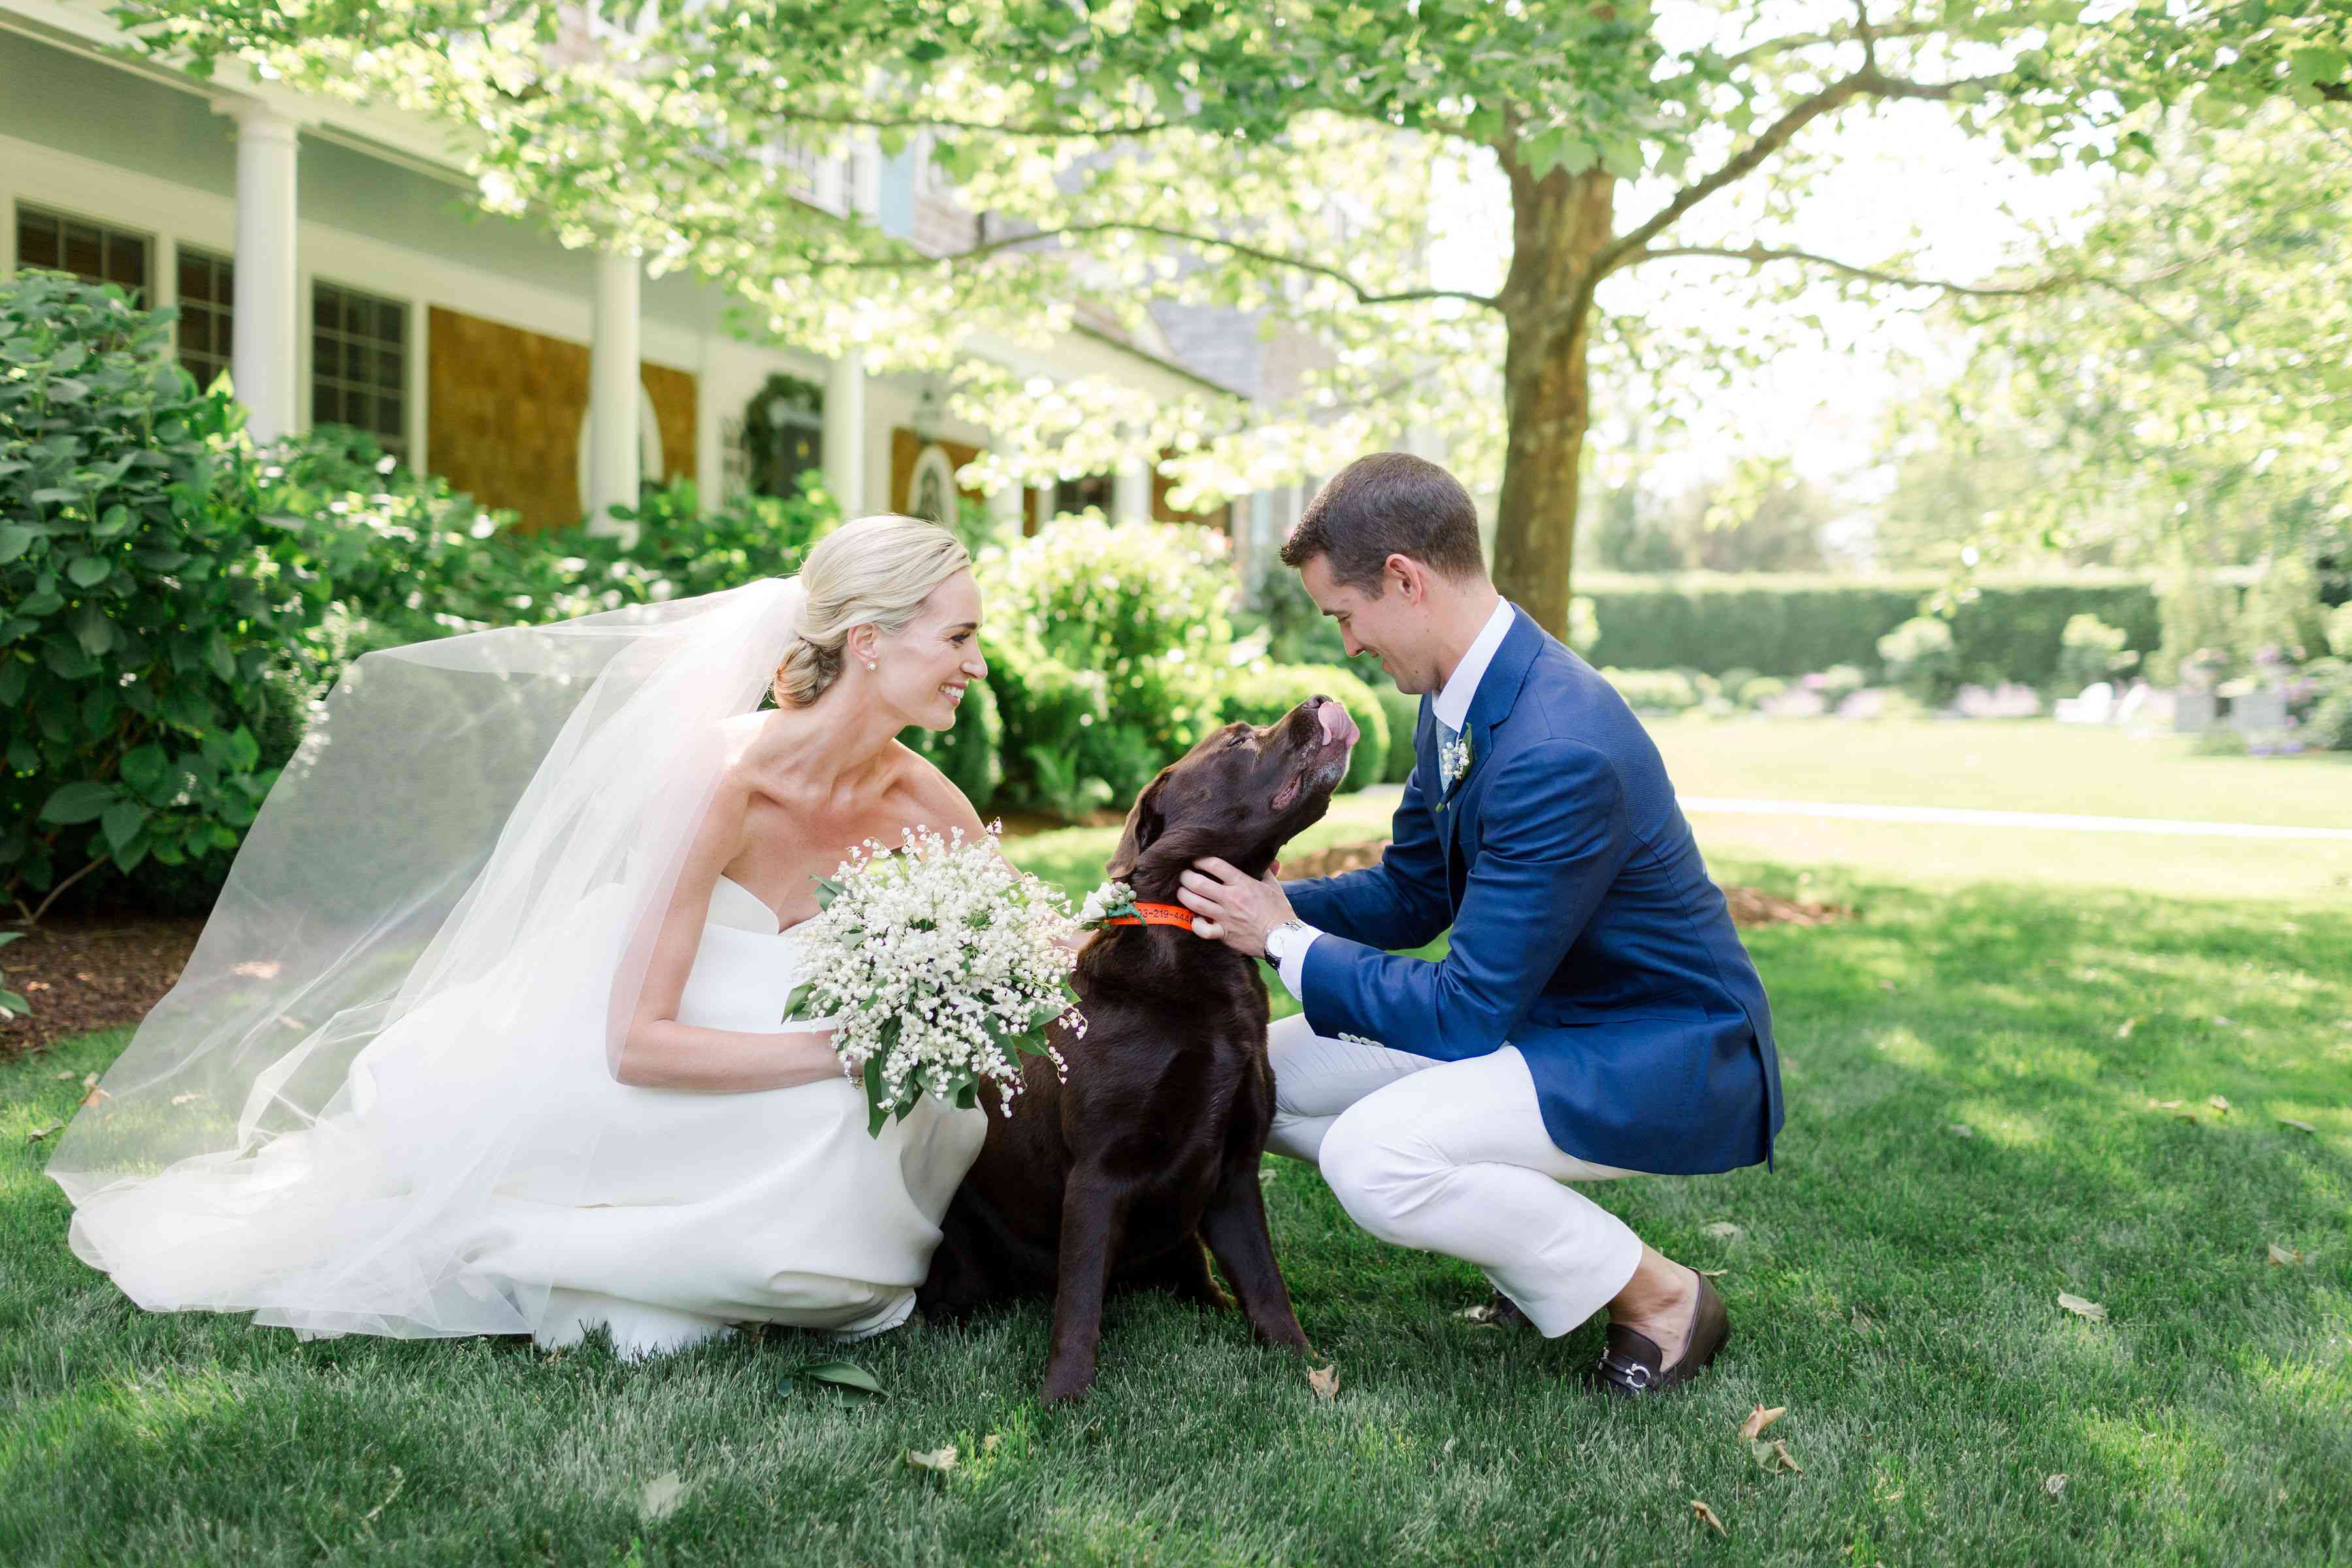 A Classic Summer Wedding in the Hamptons